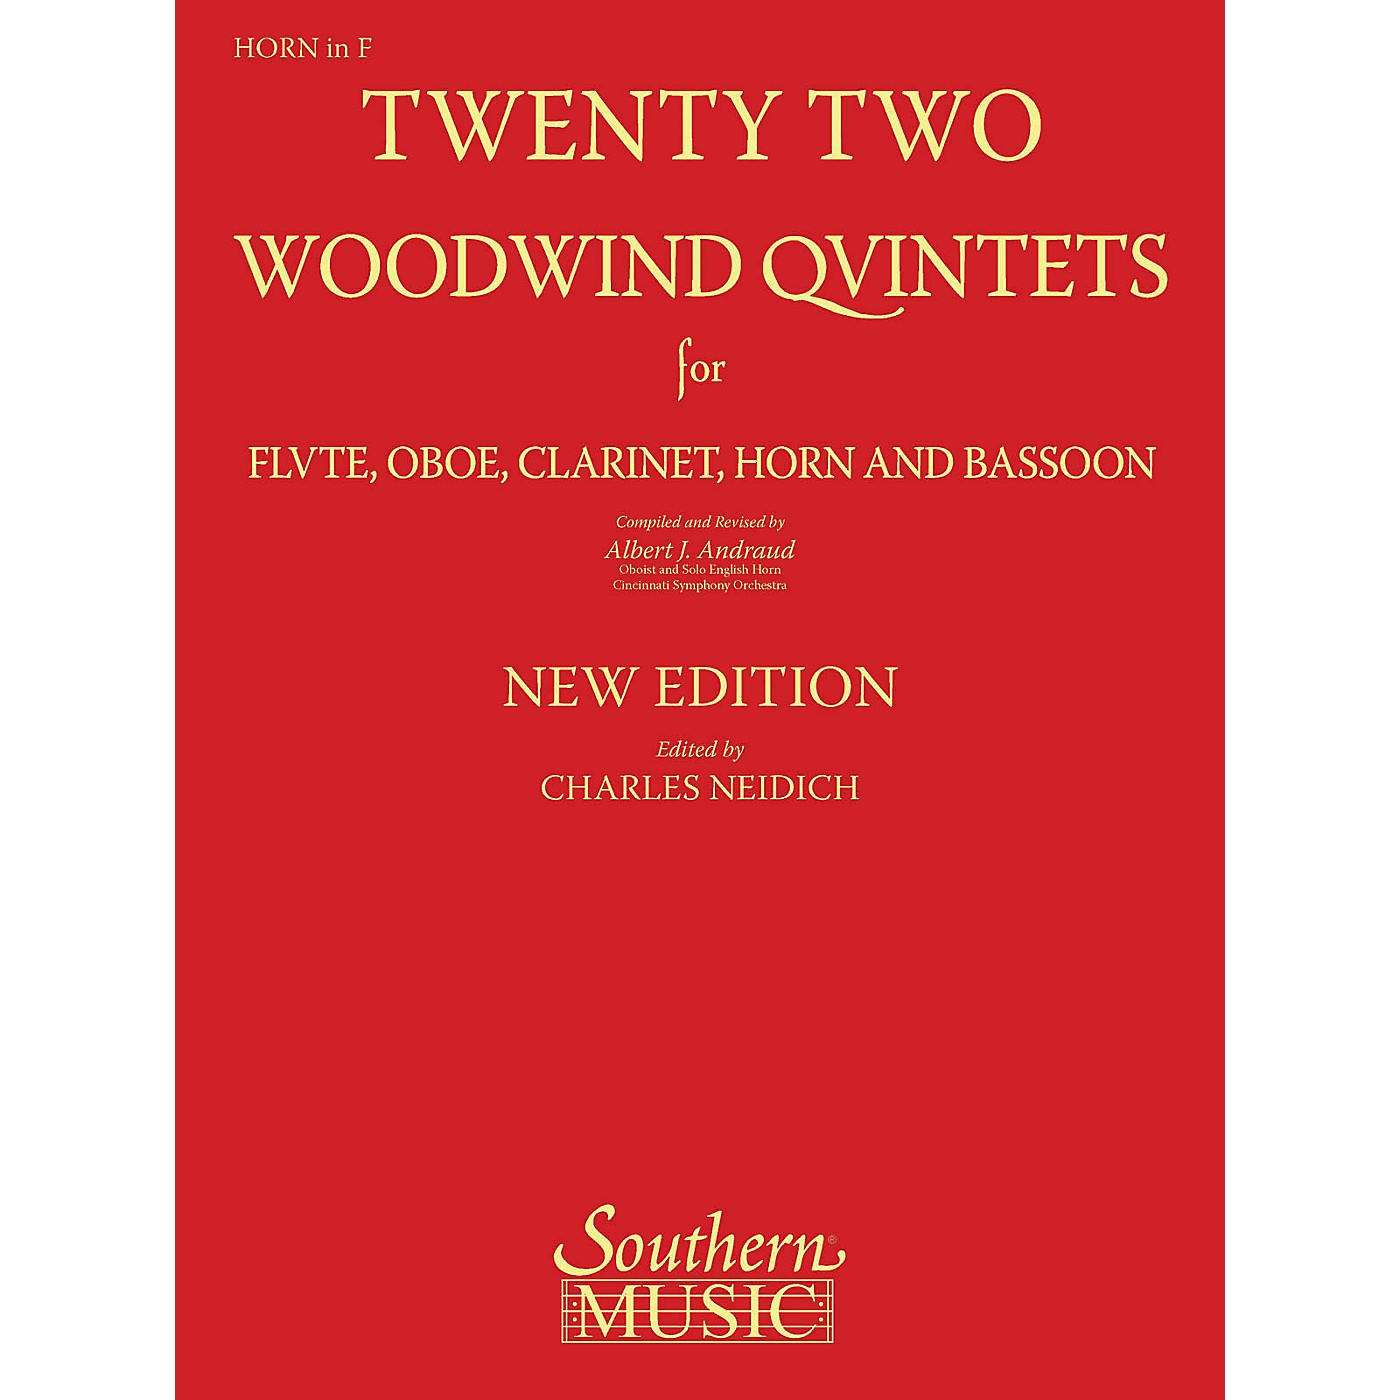 Southern 22 Woodwind Quintets - New Edition (Horn Part) Southern Music Series Arranged by Albert Andraud thumbnail